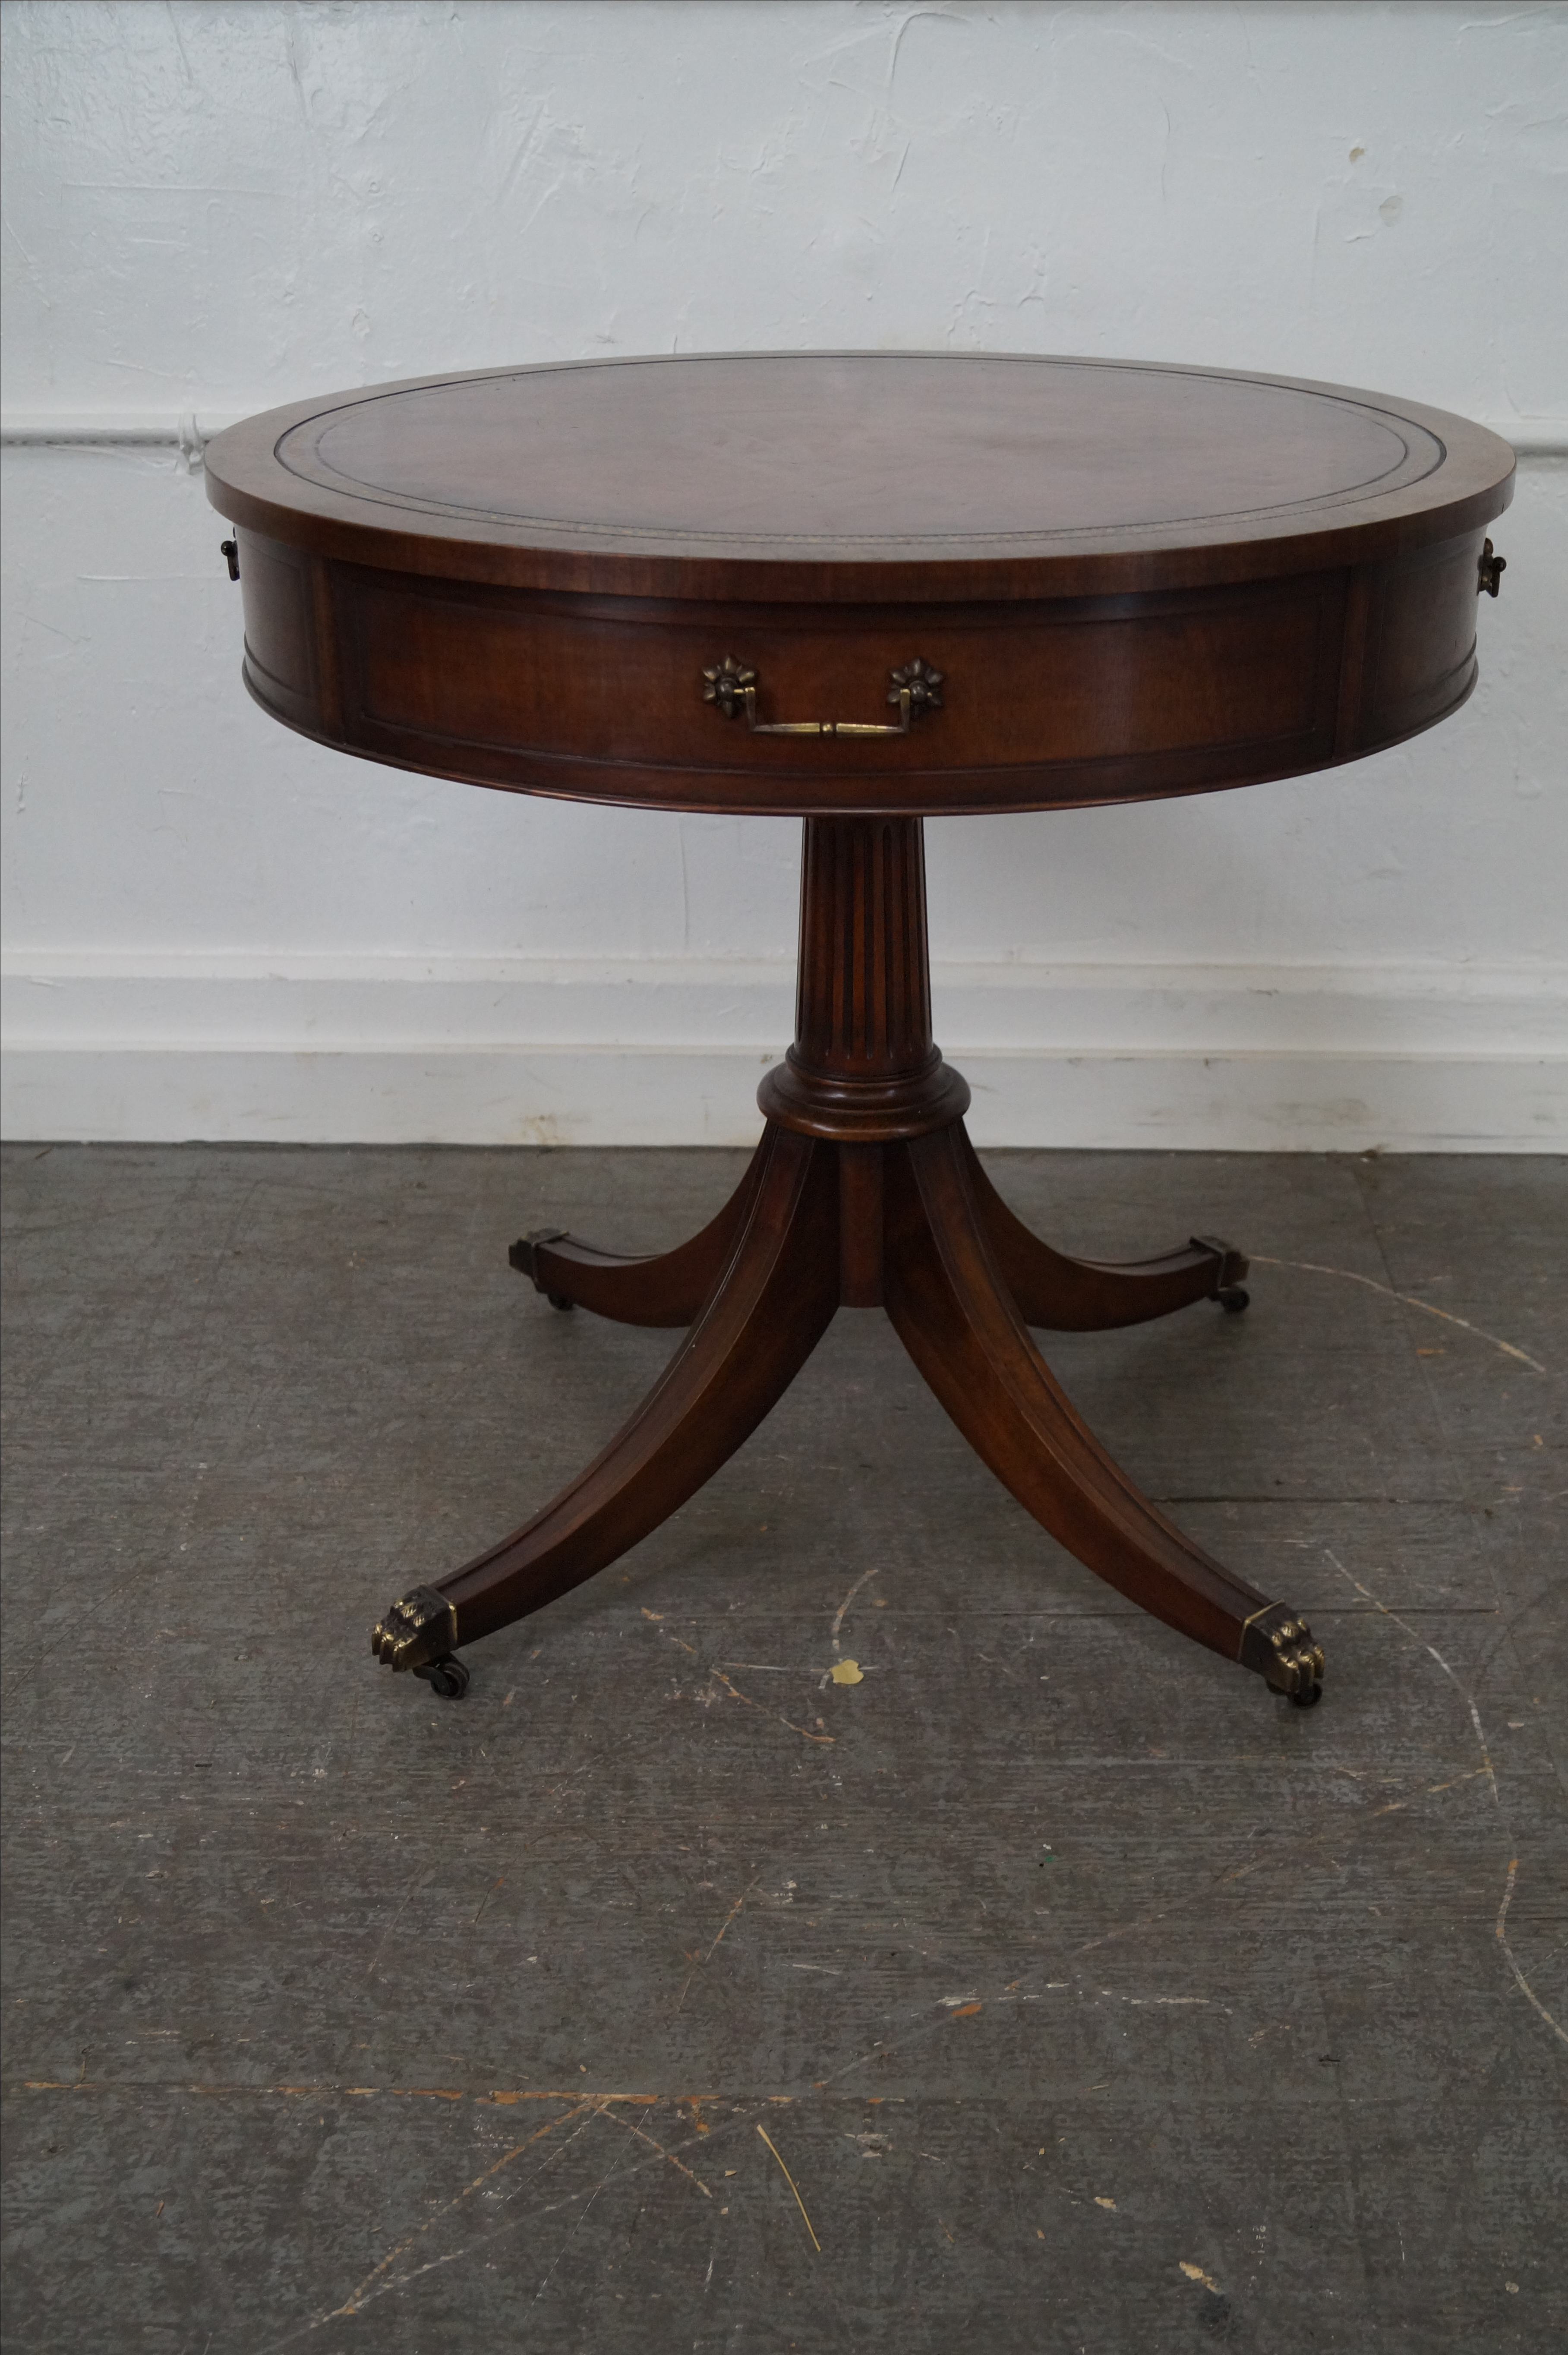 Wonderful Weiman 1940s Mahogany Round Leather Top Drum Table   Image 3 Of 10